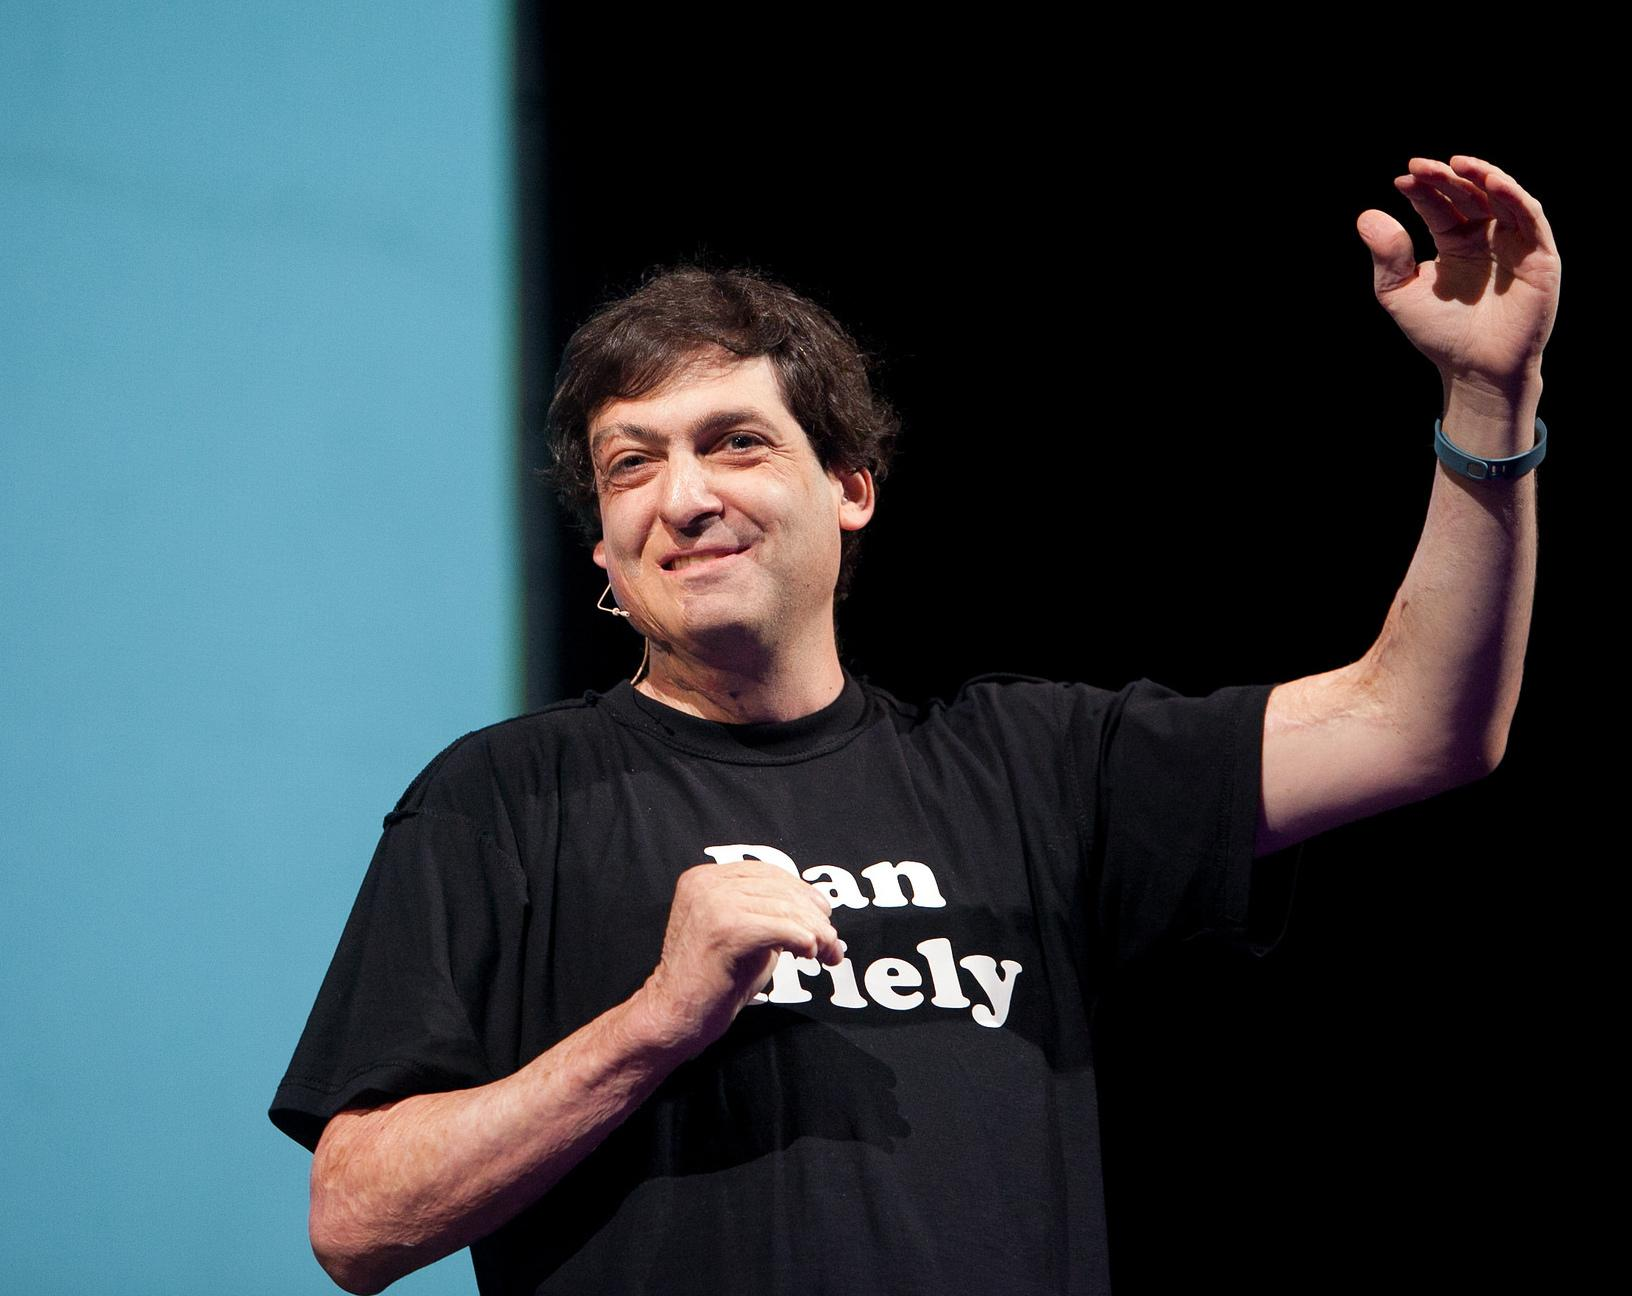 TED Book author: Dan Ariely